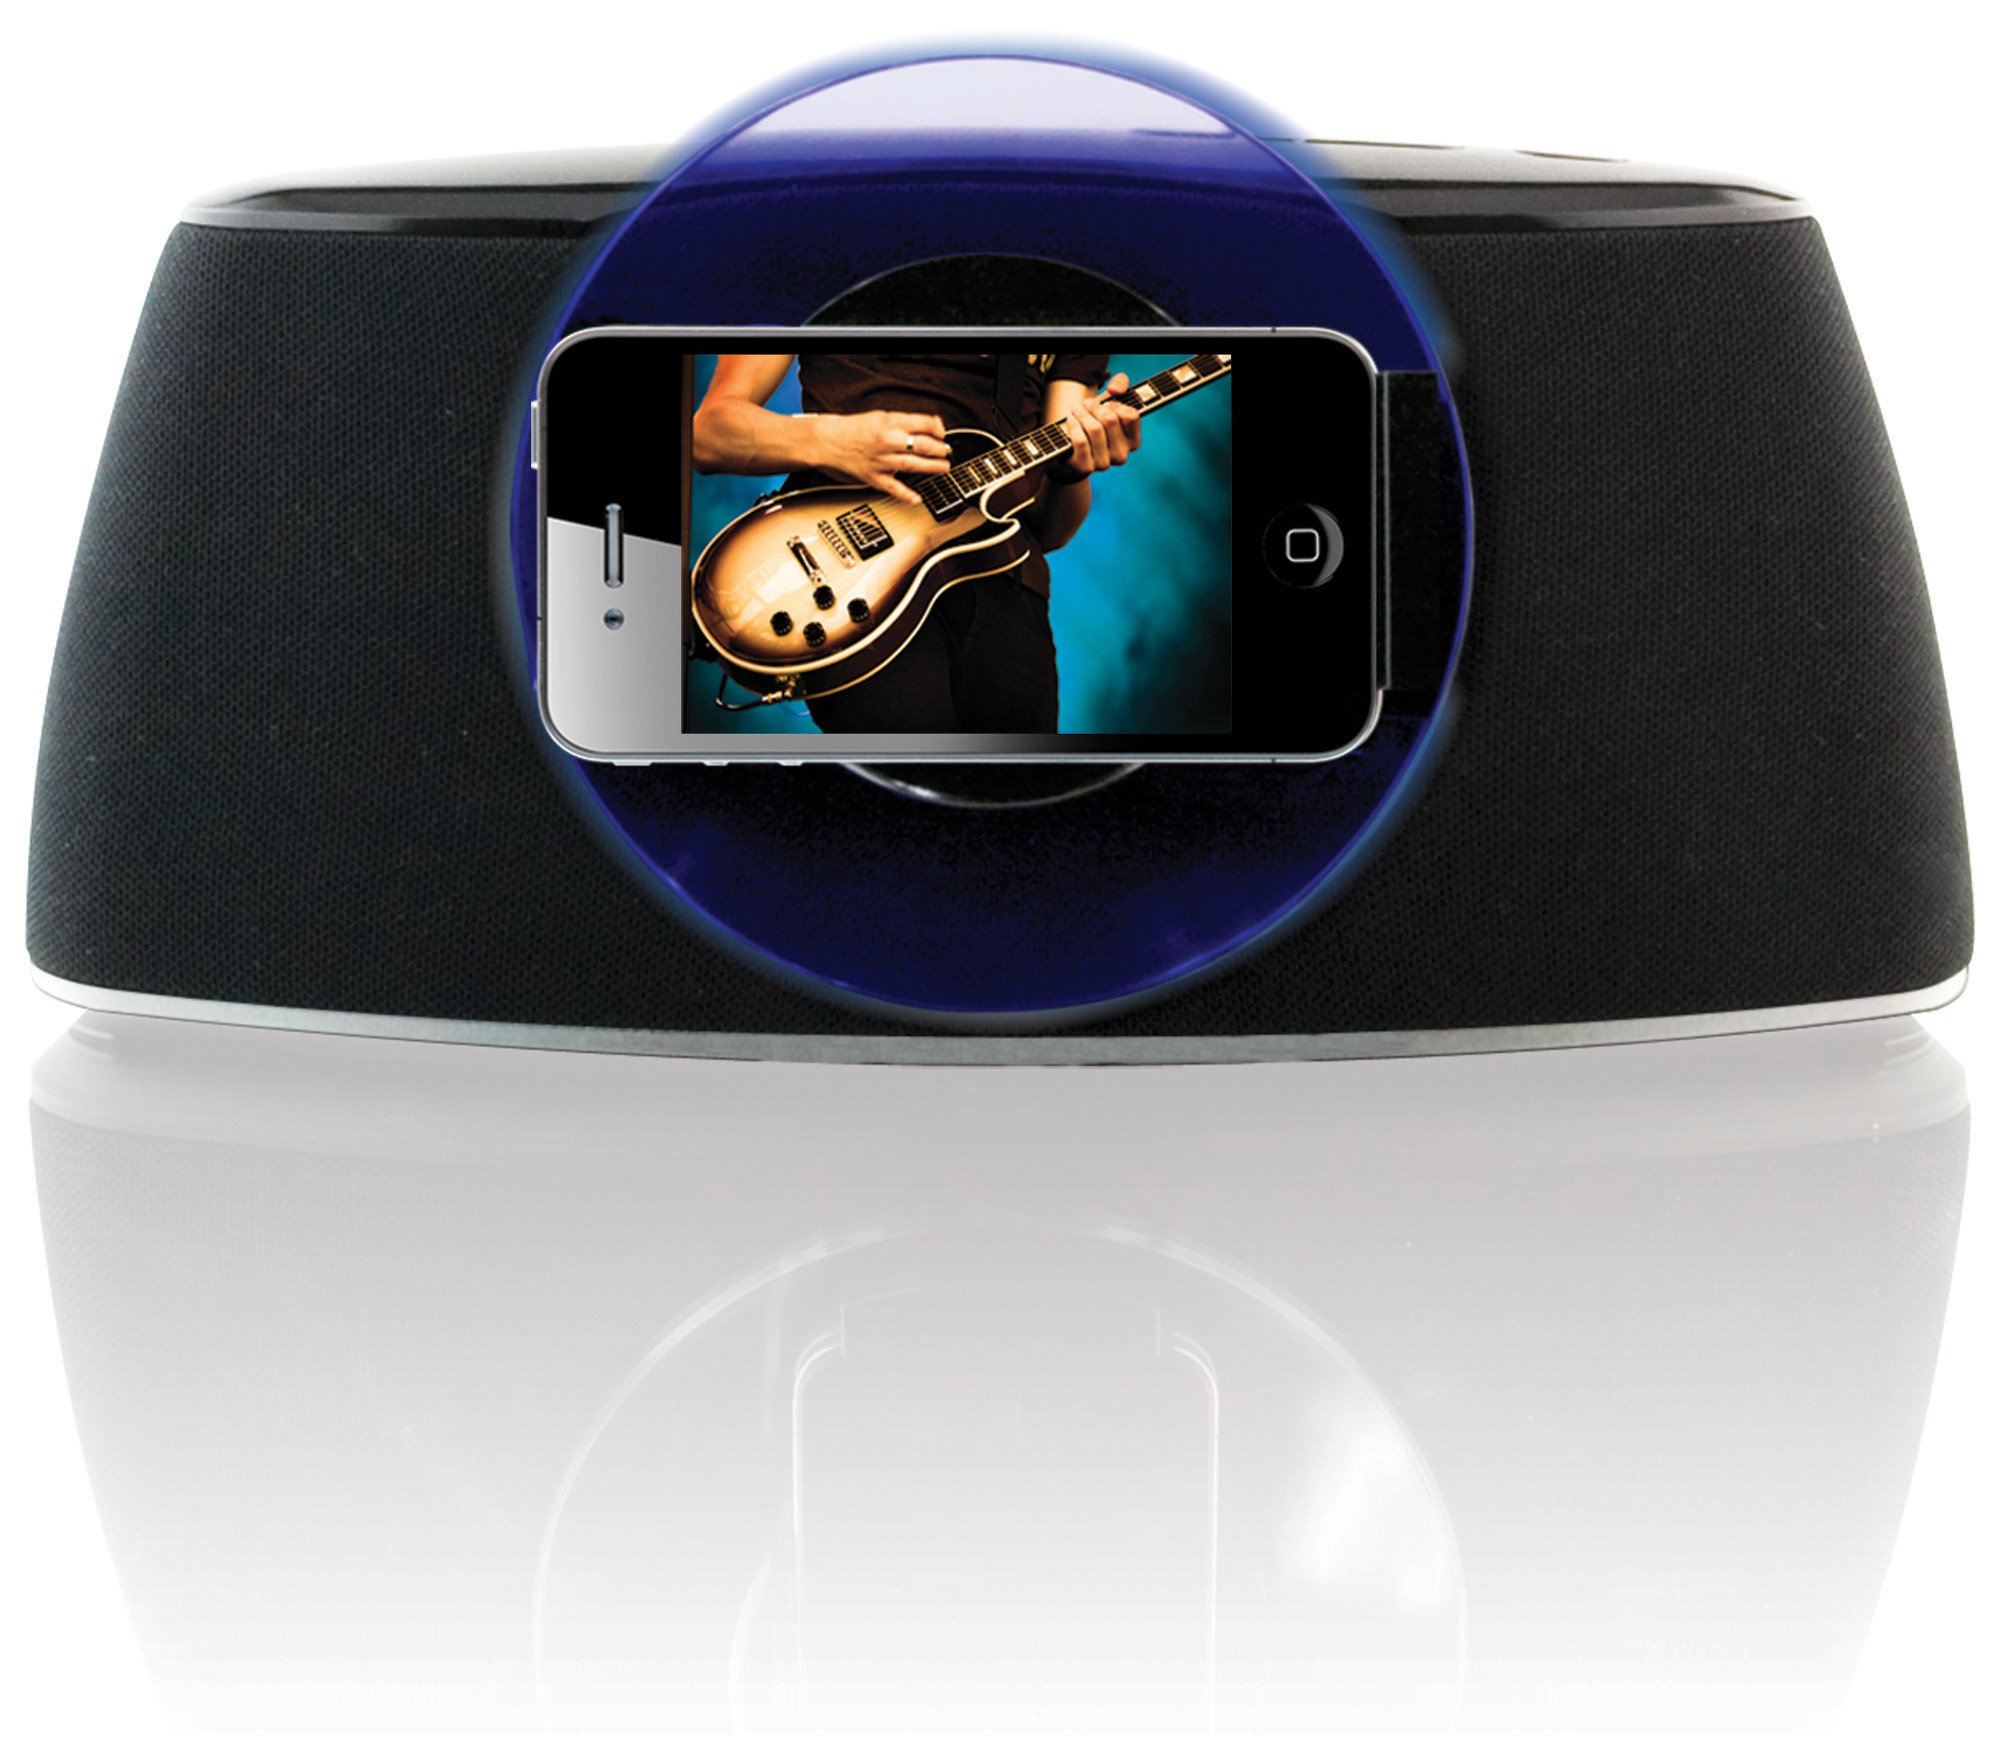 iLive iSP301B App-Enhanced Speaker with Rotating Dock for iPhone/iPod